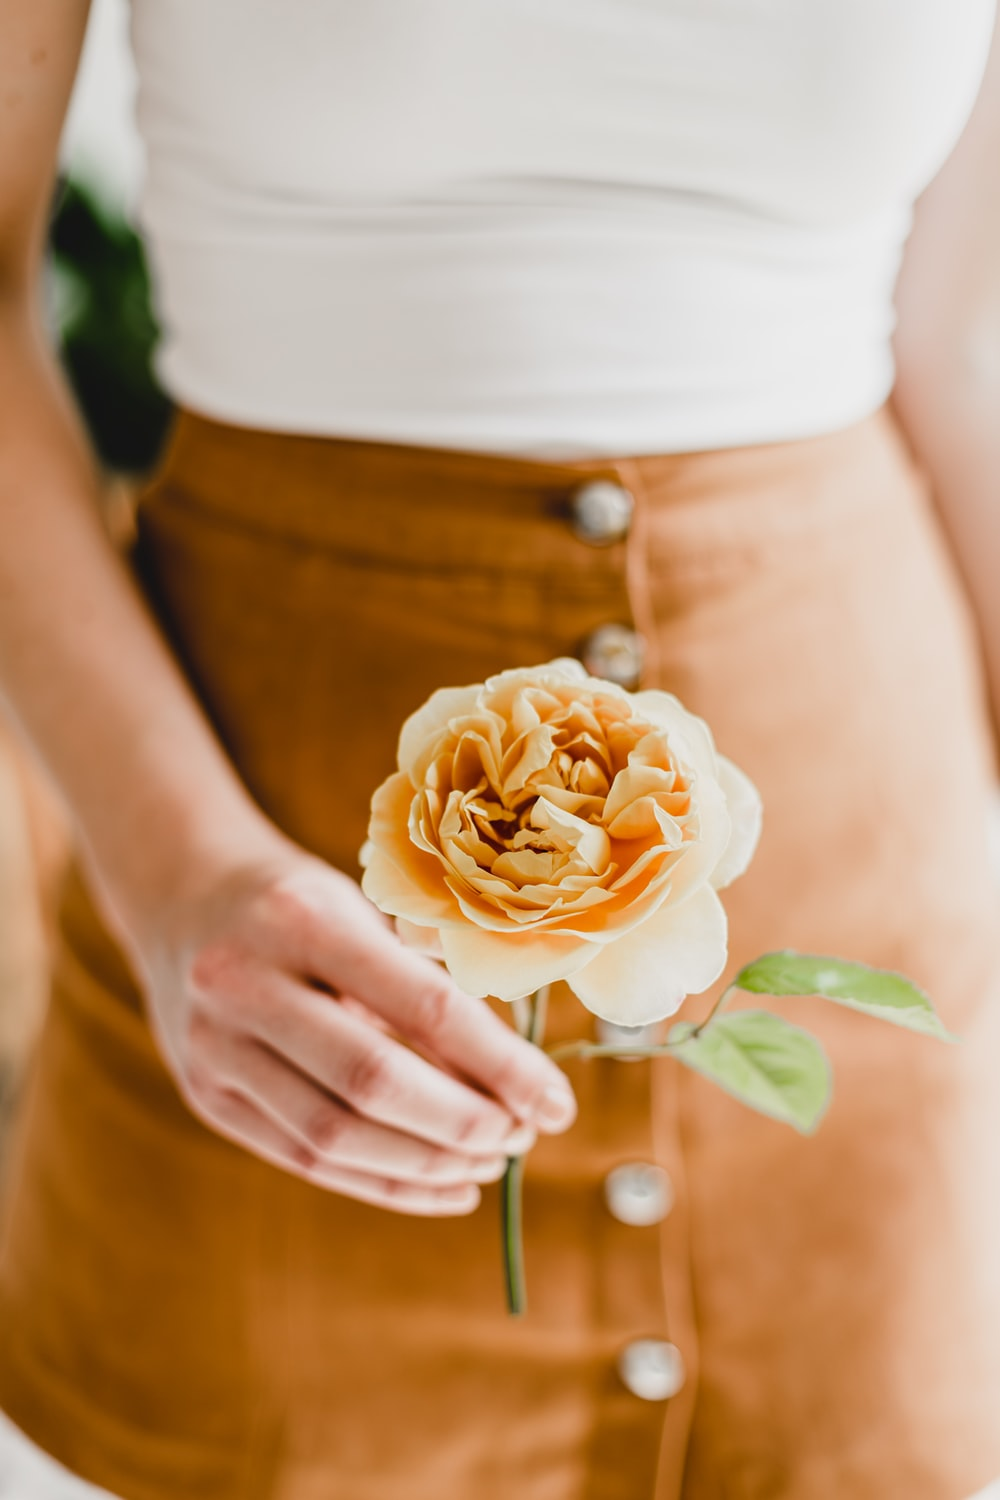 person holding white rose in close up photography